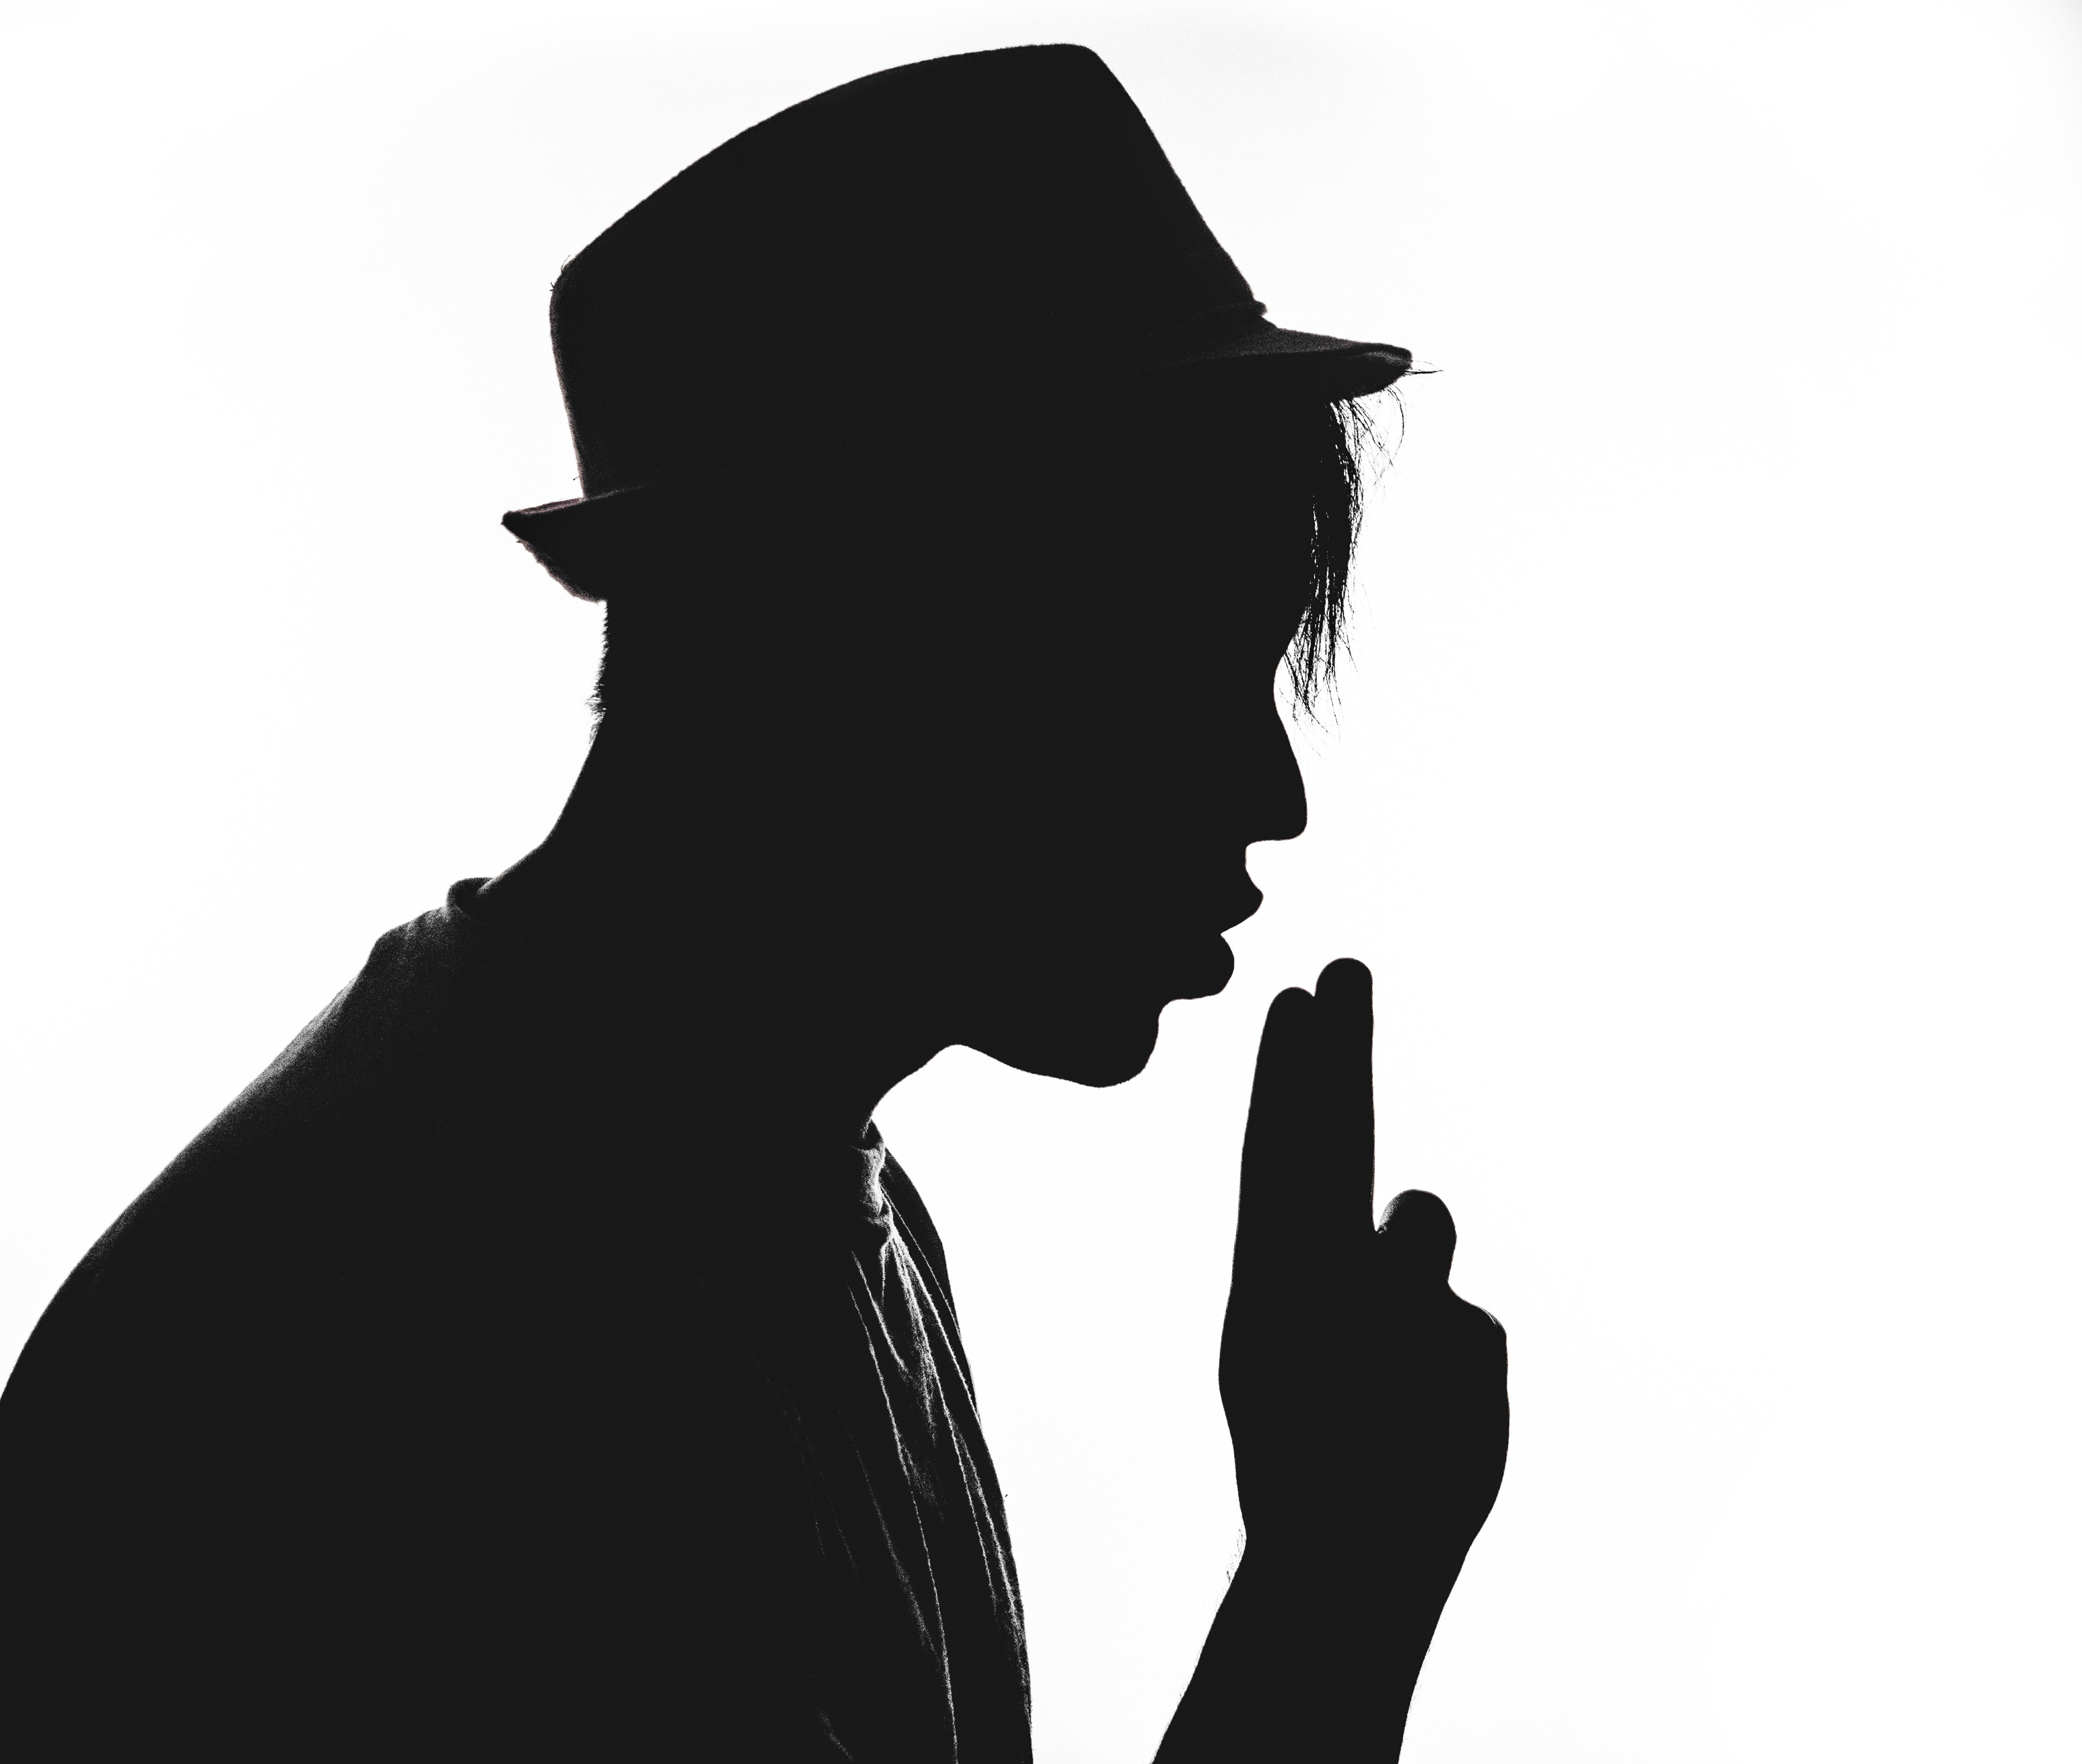 Silhouette Man With Hat